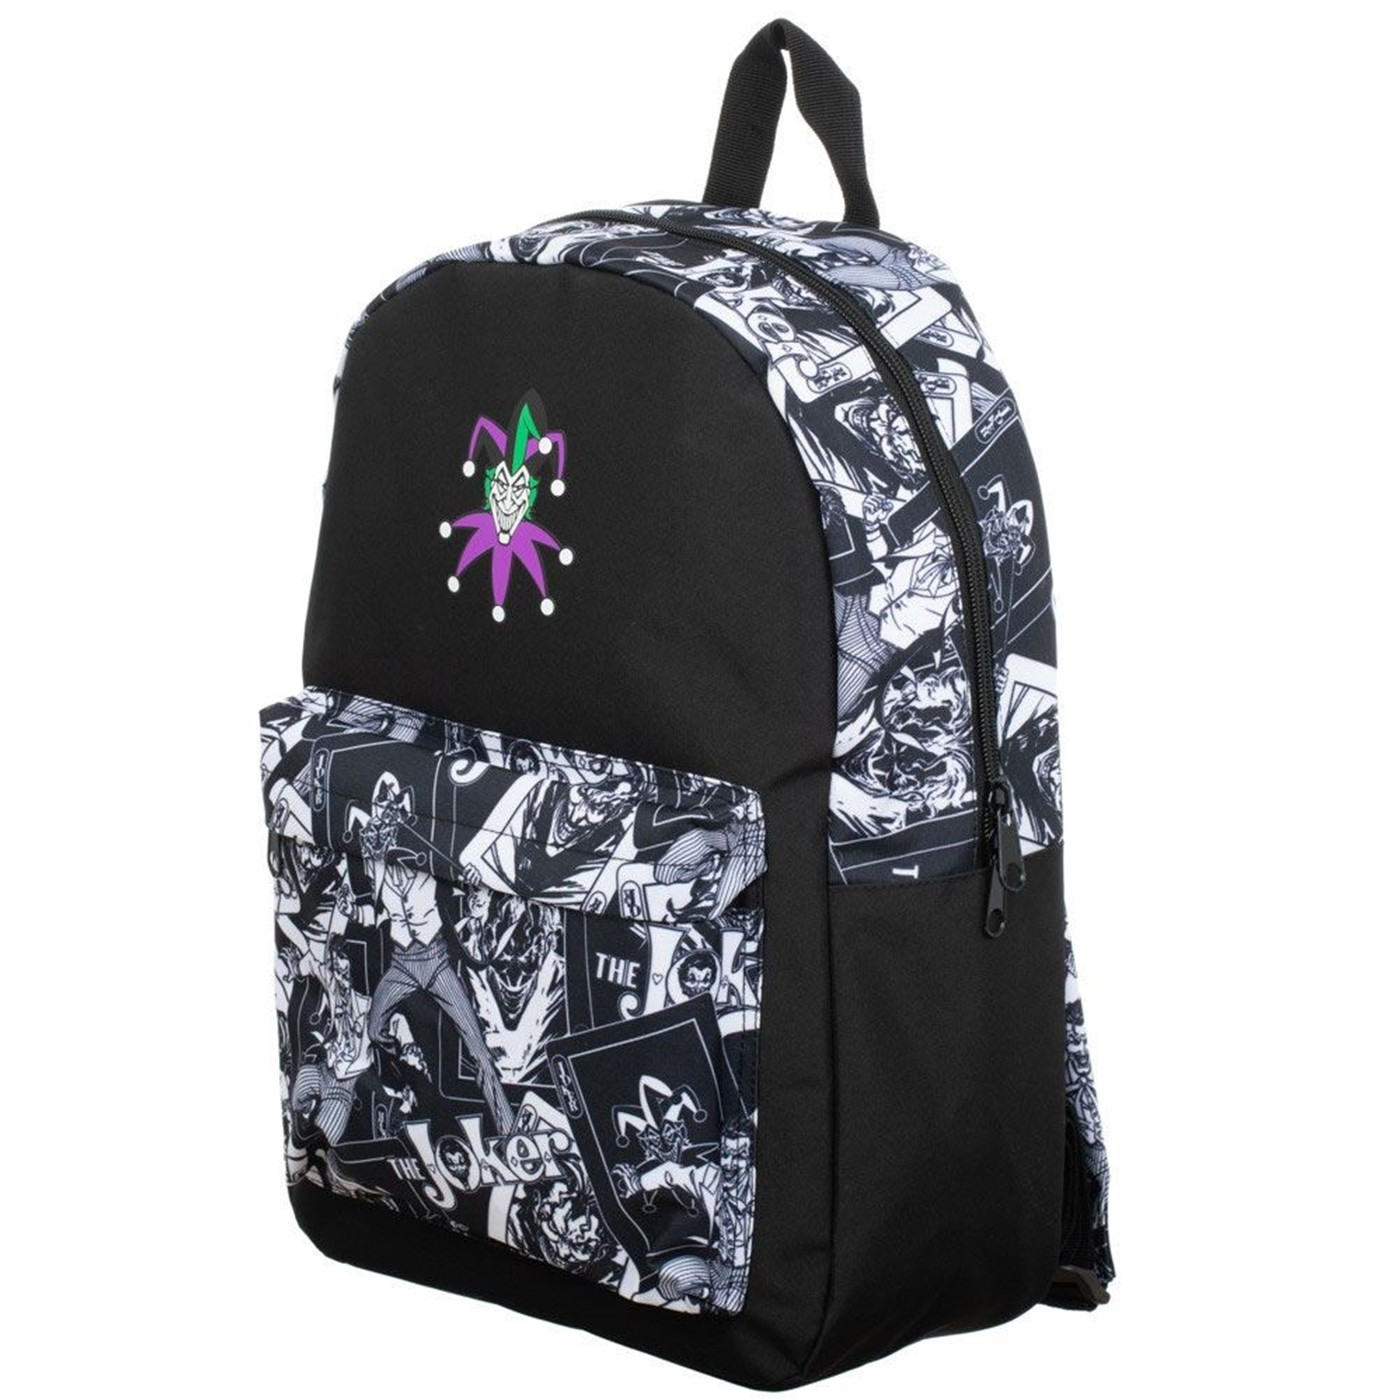 Joker Sublimated Panel Print Backpack